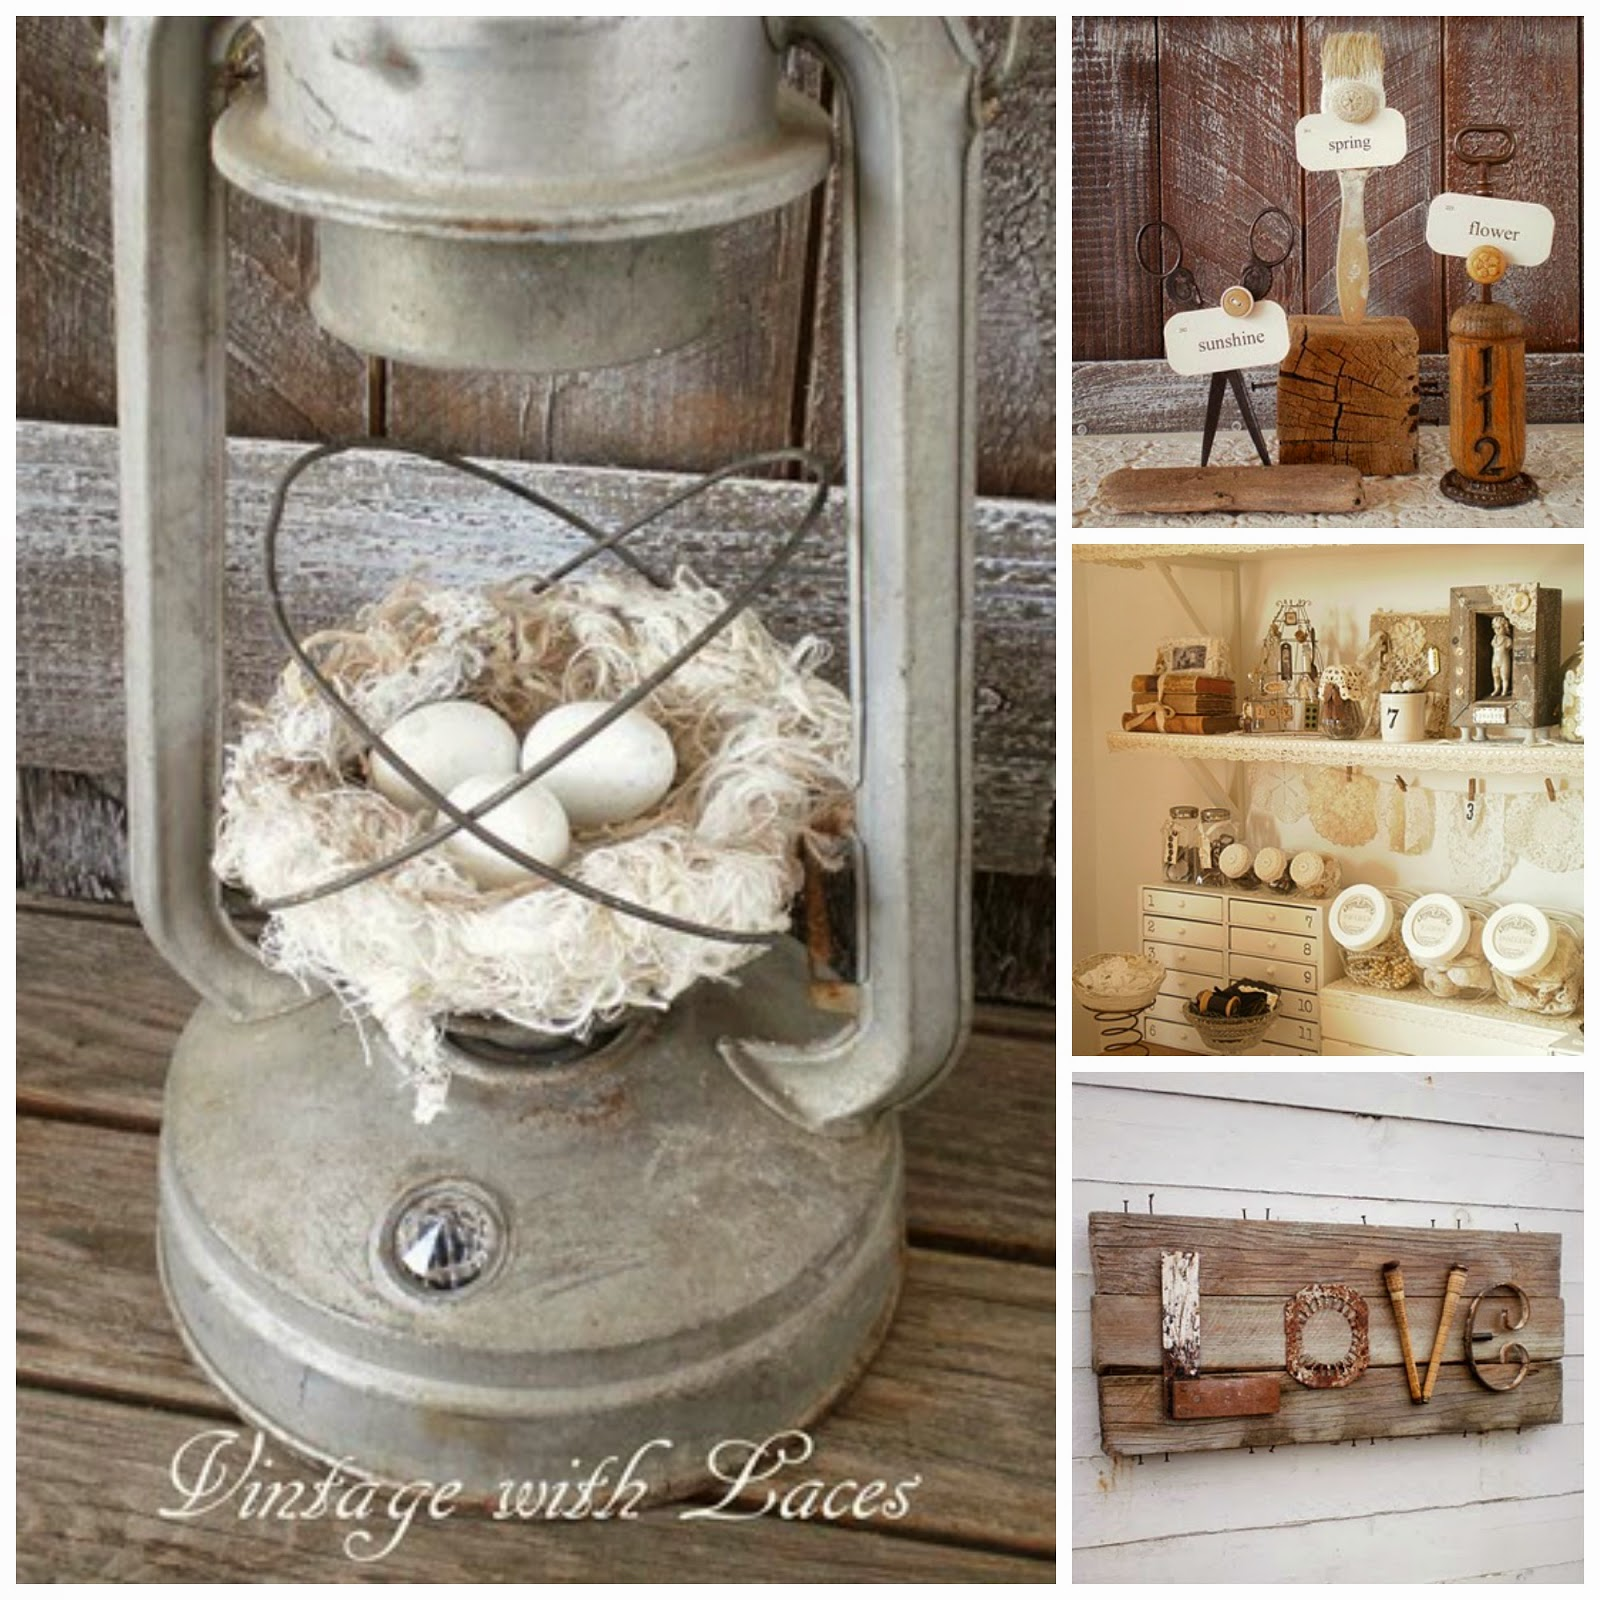 Chipping with Charm: Blog Tour, Vintage with Lace...http://www.chippingwithcharm.blogspot.com/